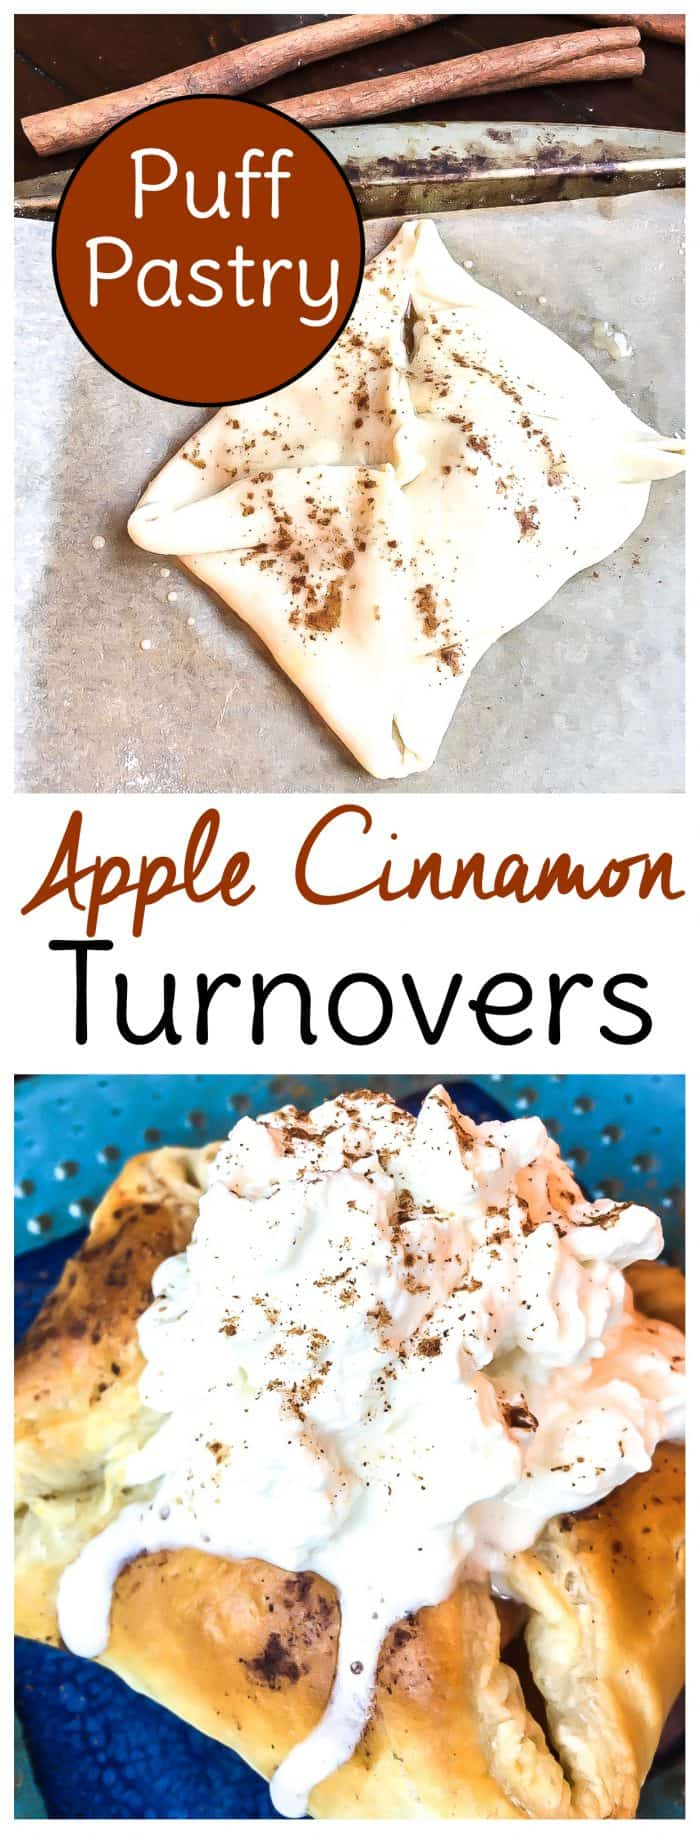 apple cinnamon puff pastry turnovers